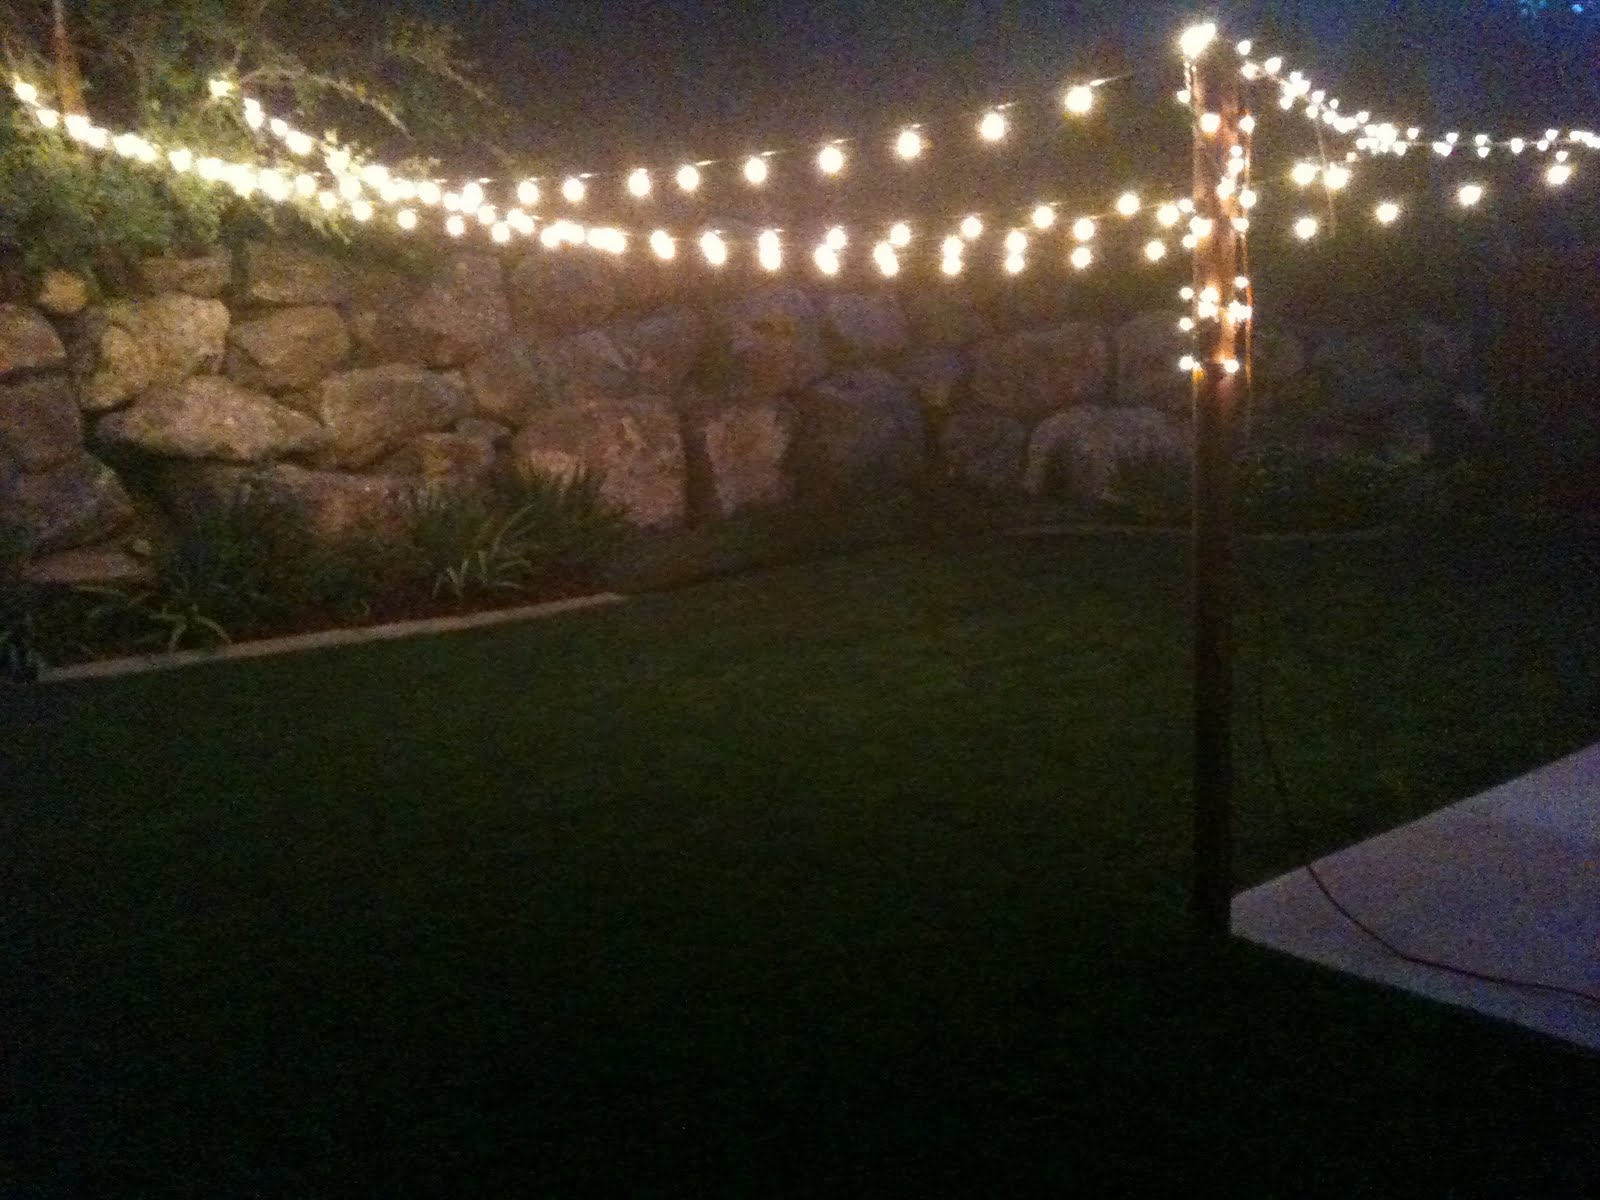 Outdoor summer party lights some outdoor party lights